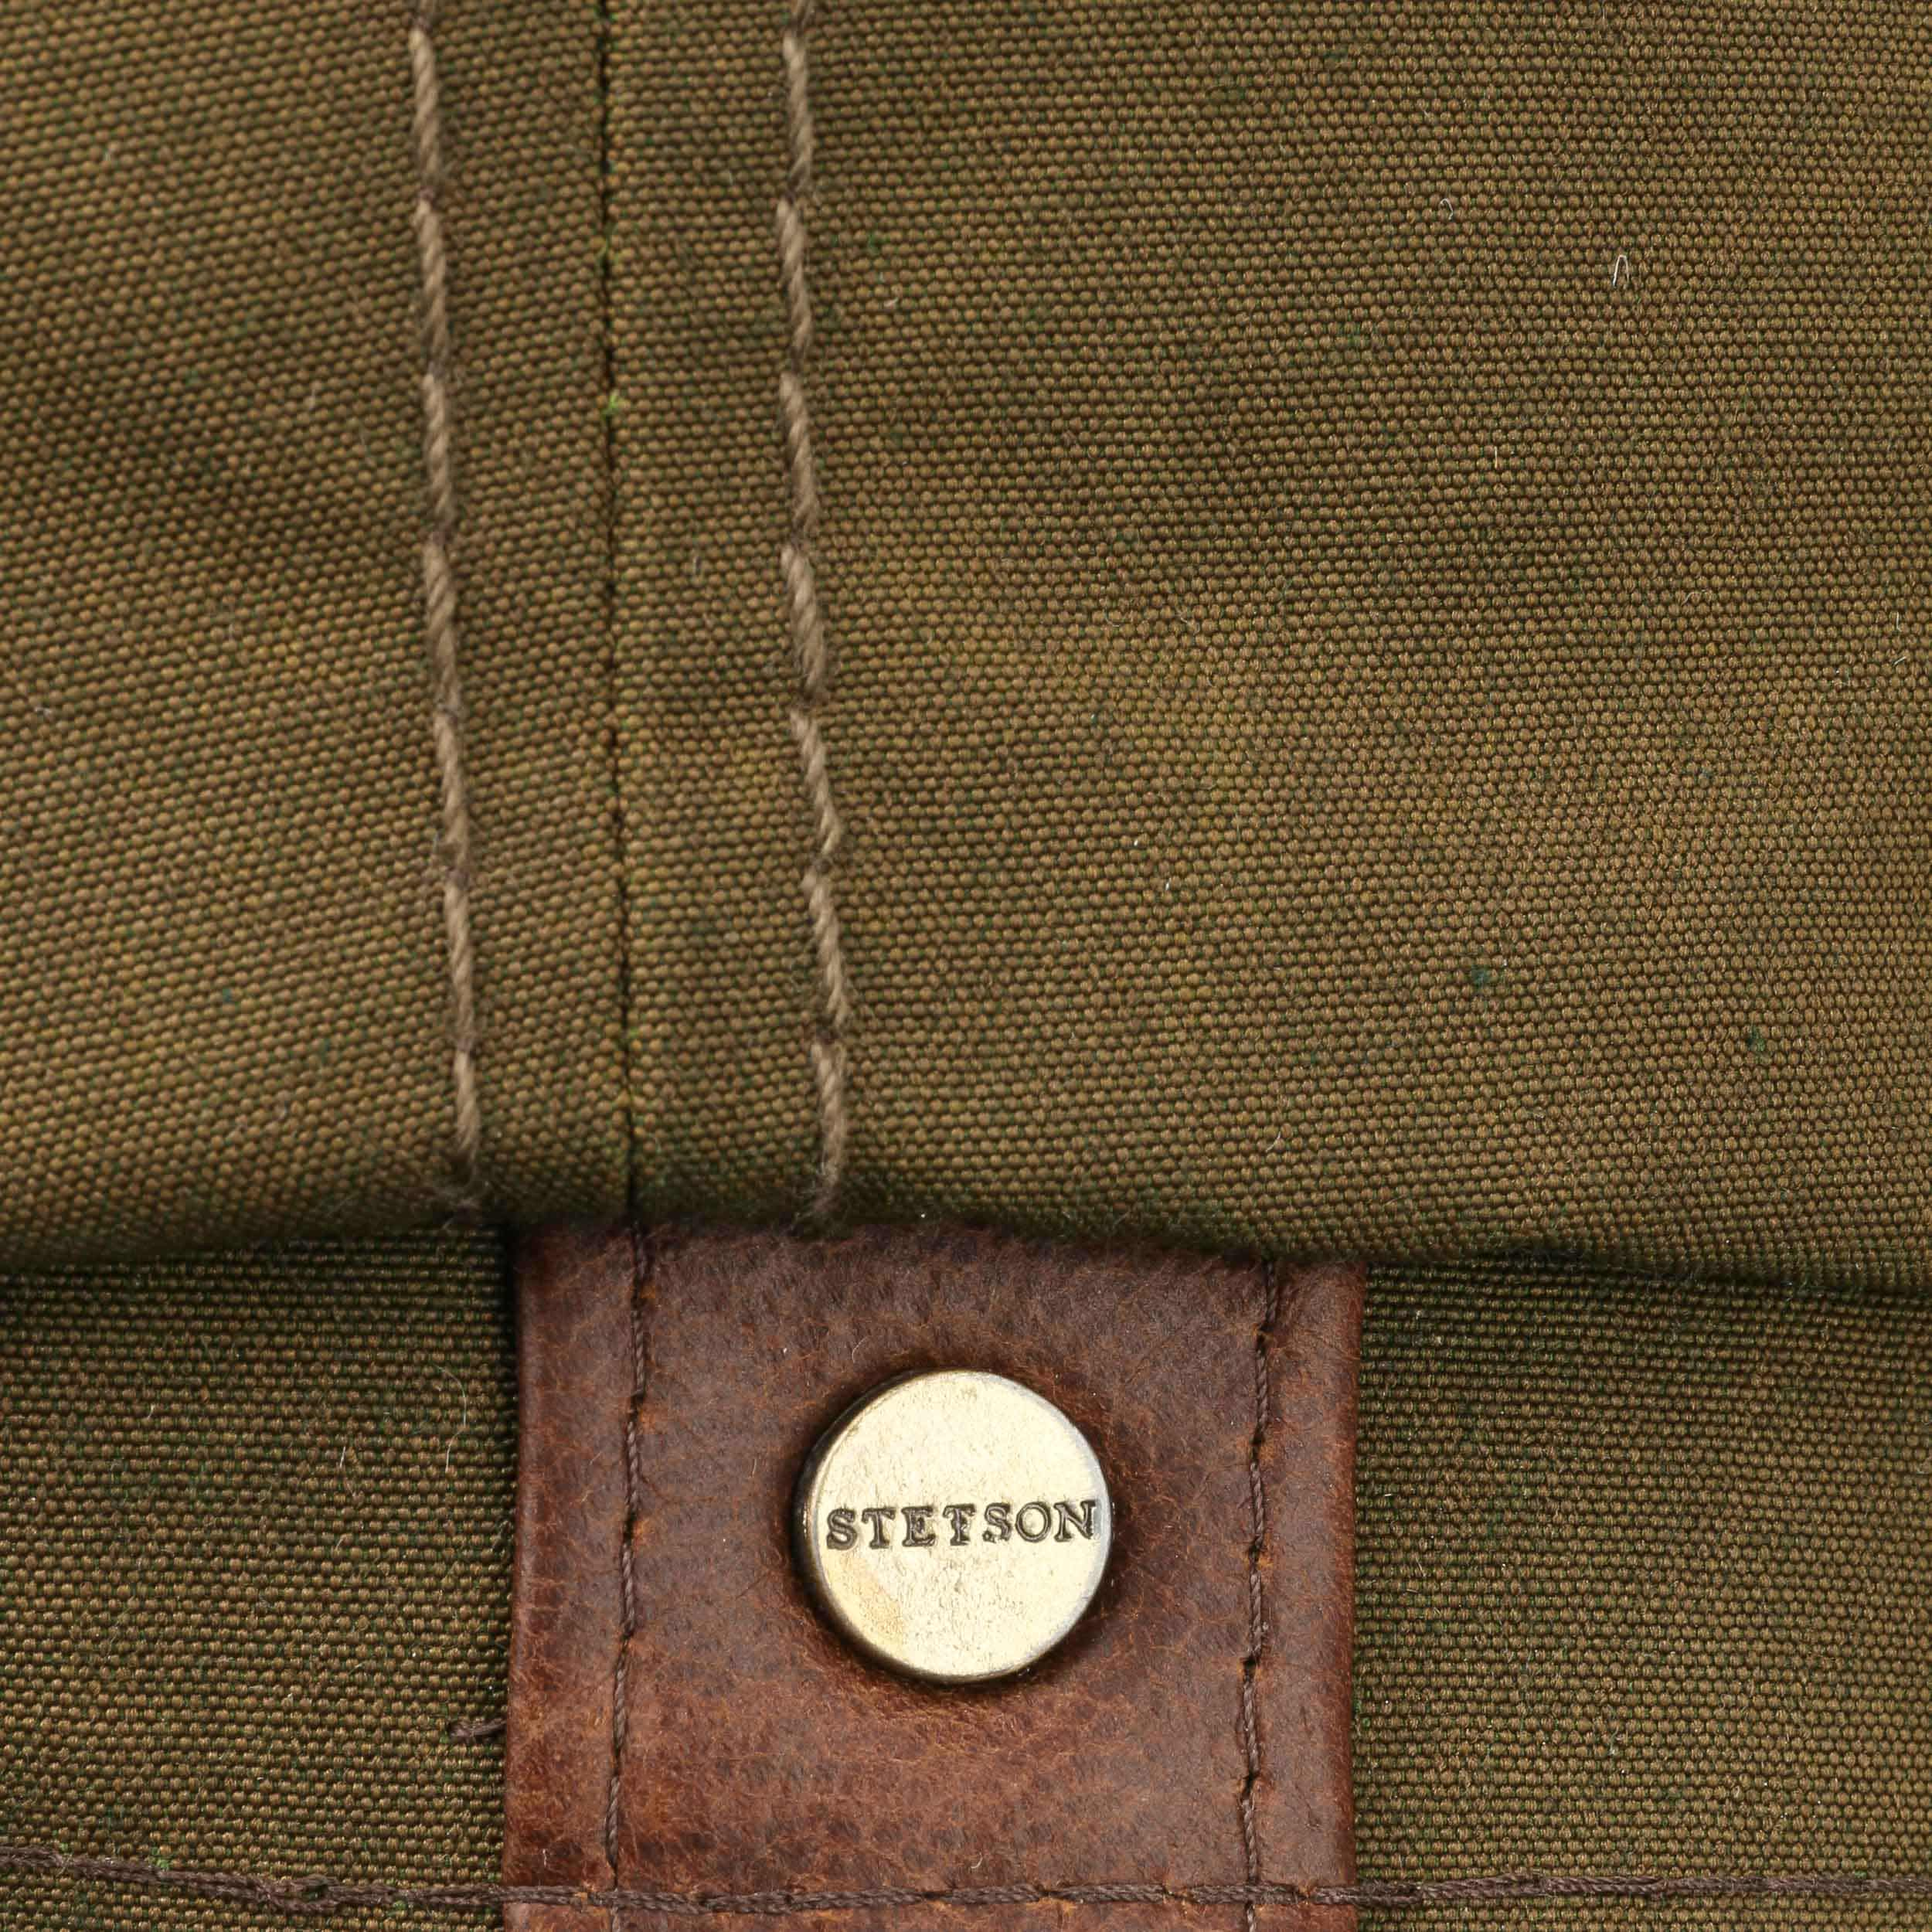 b046d929495 ... Hatteras Waxed Cotton Outdoor Cap by Stetson - olive 3 ...